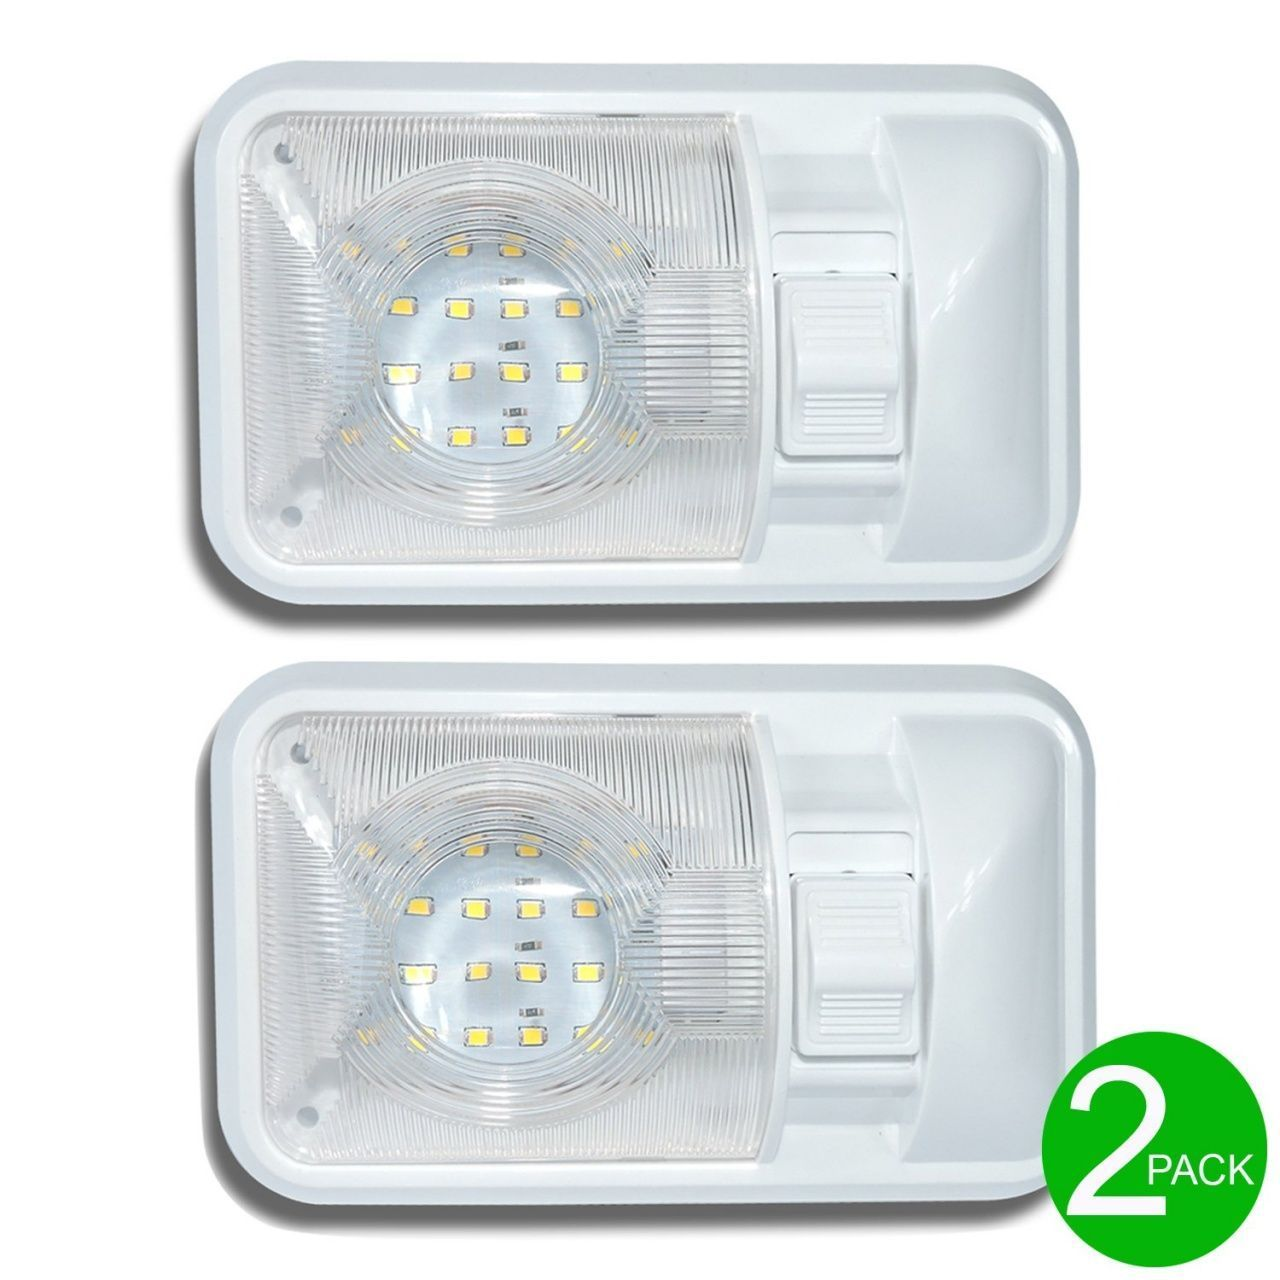 12 Volt Led Rv Porch Lights Led Lights Porch Volt Led Lights Lightsled Porch Volt In 2020 Porch Lighting Rv Led Lights Interior Led Lights